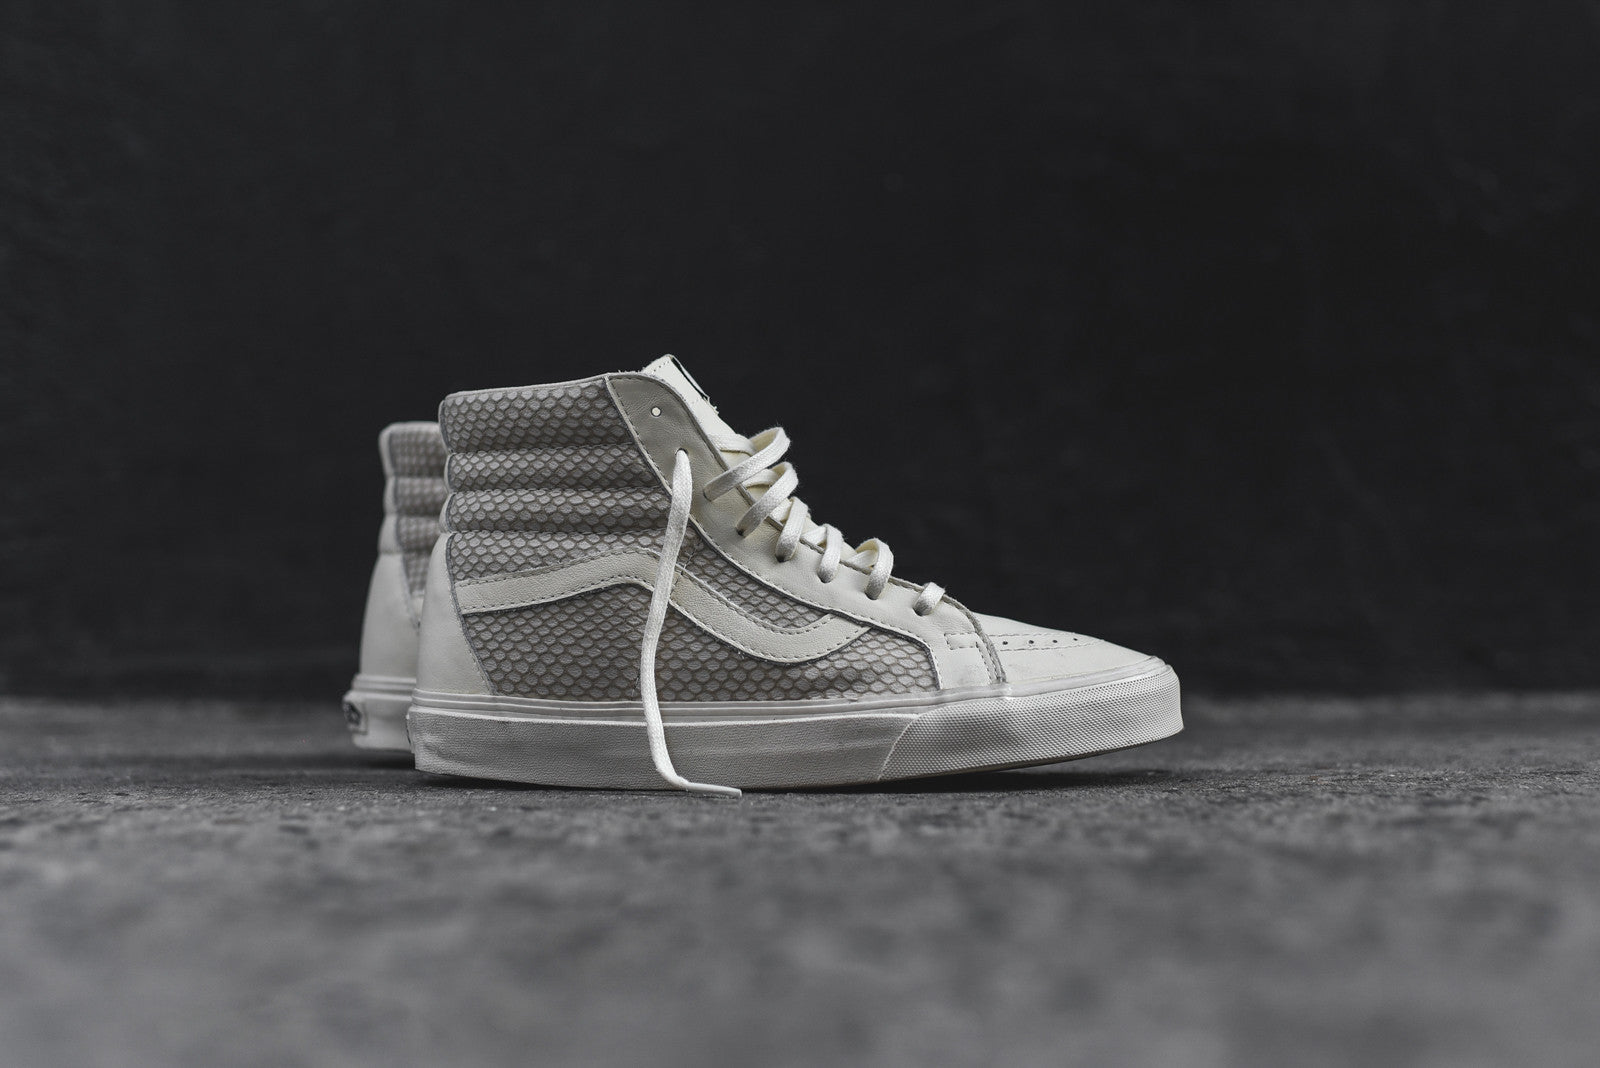 the best attitude 7e006 27f18 ... Adidas x Undefeated x Bape Campus 80s UNDFTD Olive - Size 7 - 100%  Authentic  Vans Snake Pack SK8 Hi - Antique White 1.jpg v 1458316887 ...